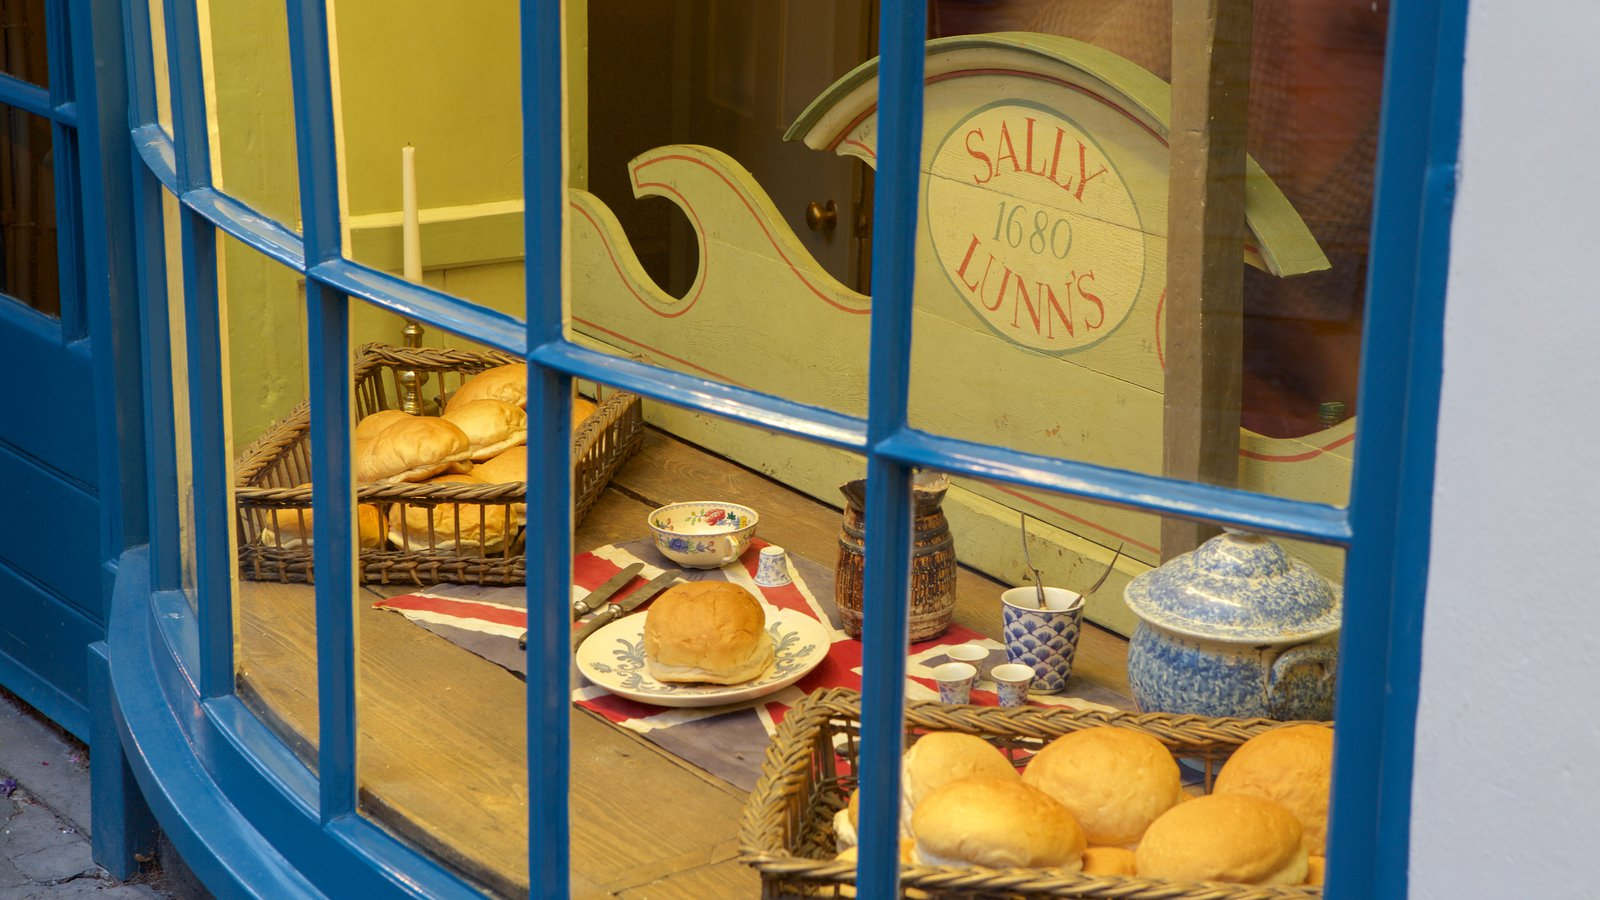 Sally Lunn\'s featuring food and signage